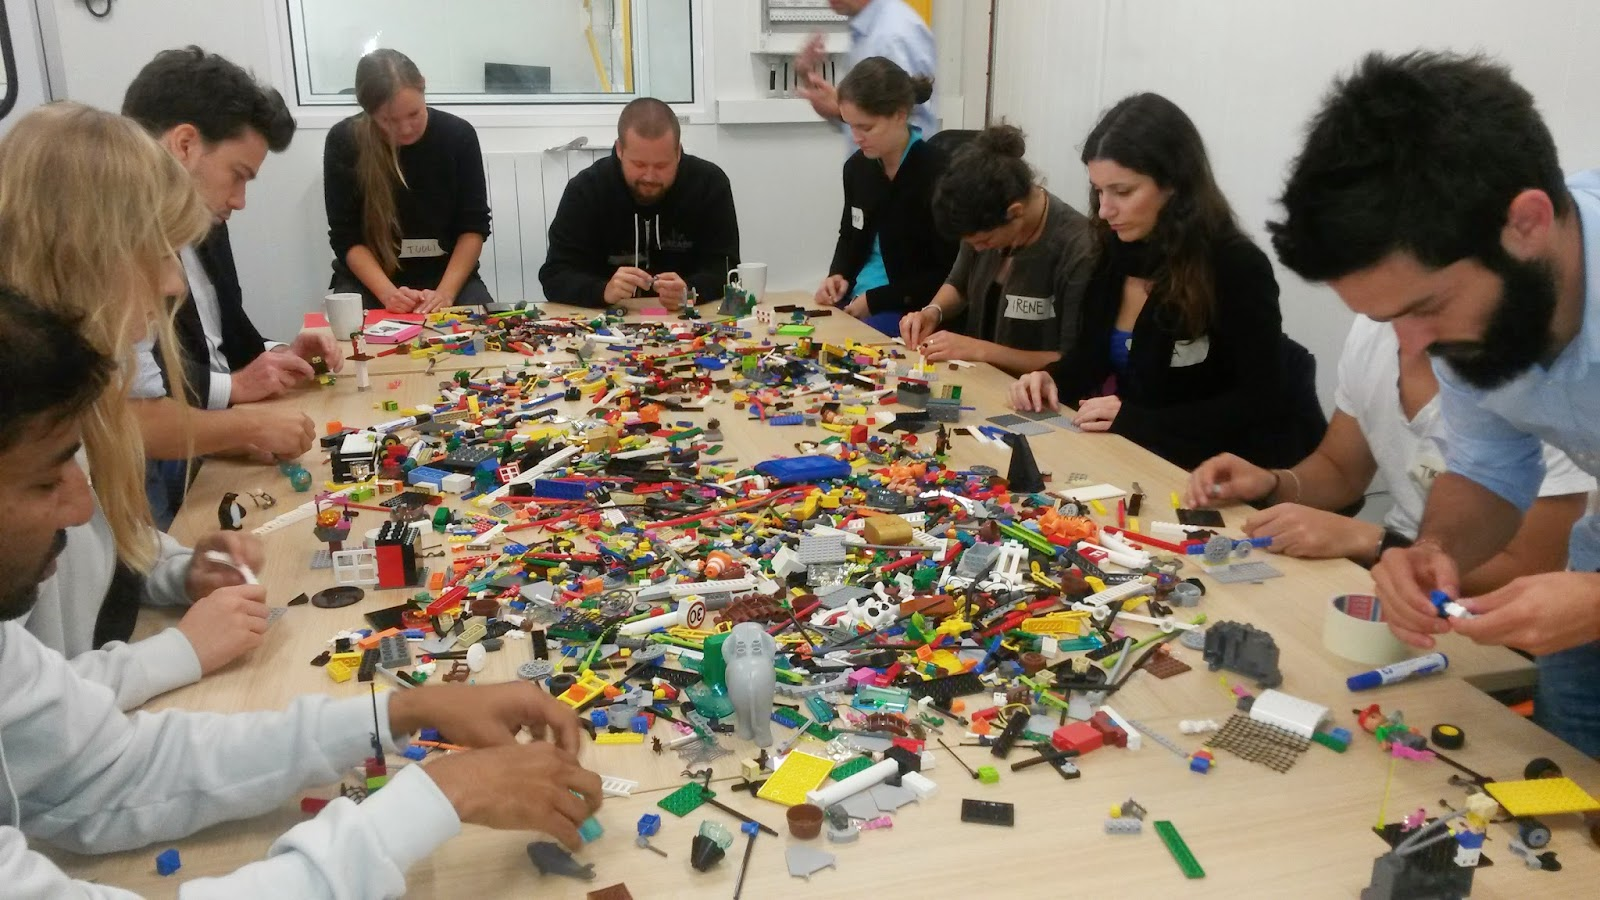 CERN-Challenge-Based-Innovation-Lego-Serious-Play-Exercise-with-Massimo-Mercuri